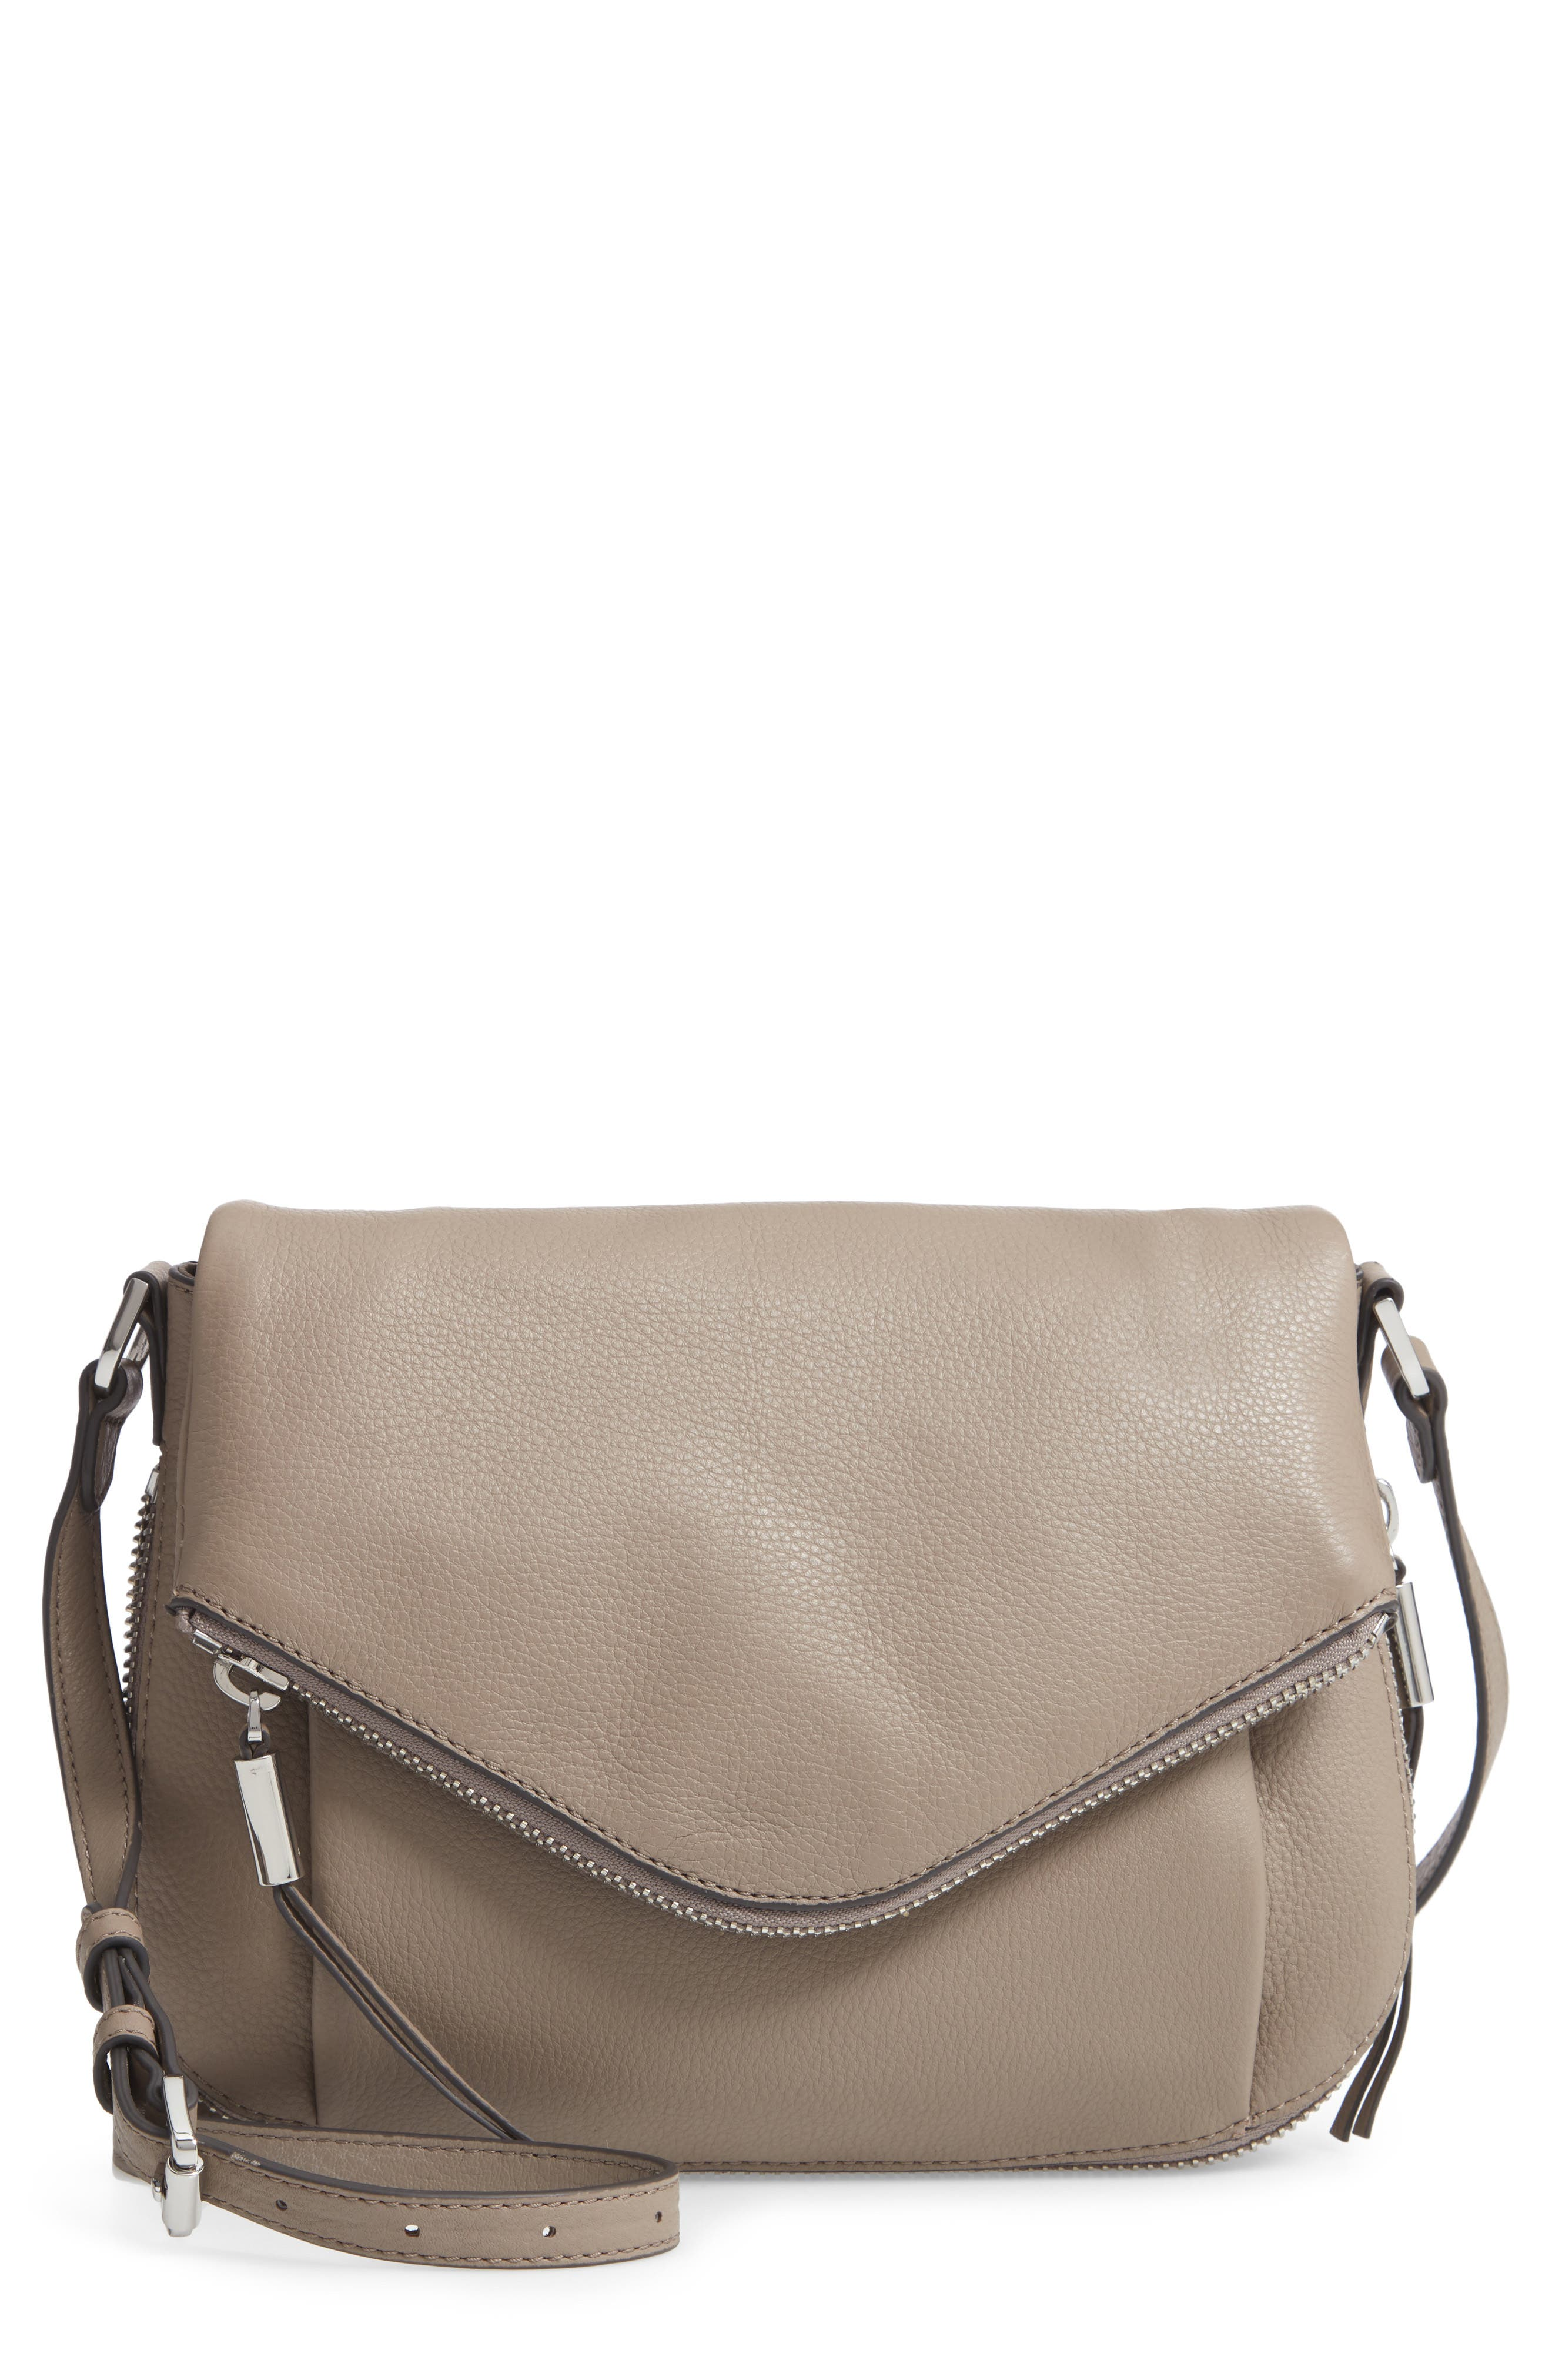 Key Leather Crossbody Bag,                         Main,                         color, TRANQUILITY